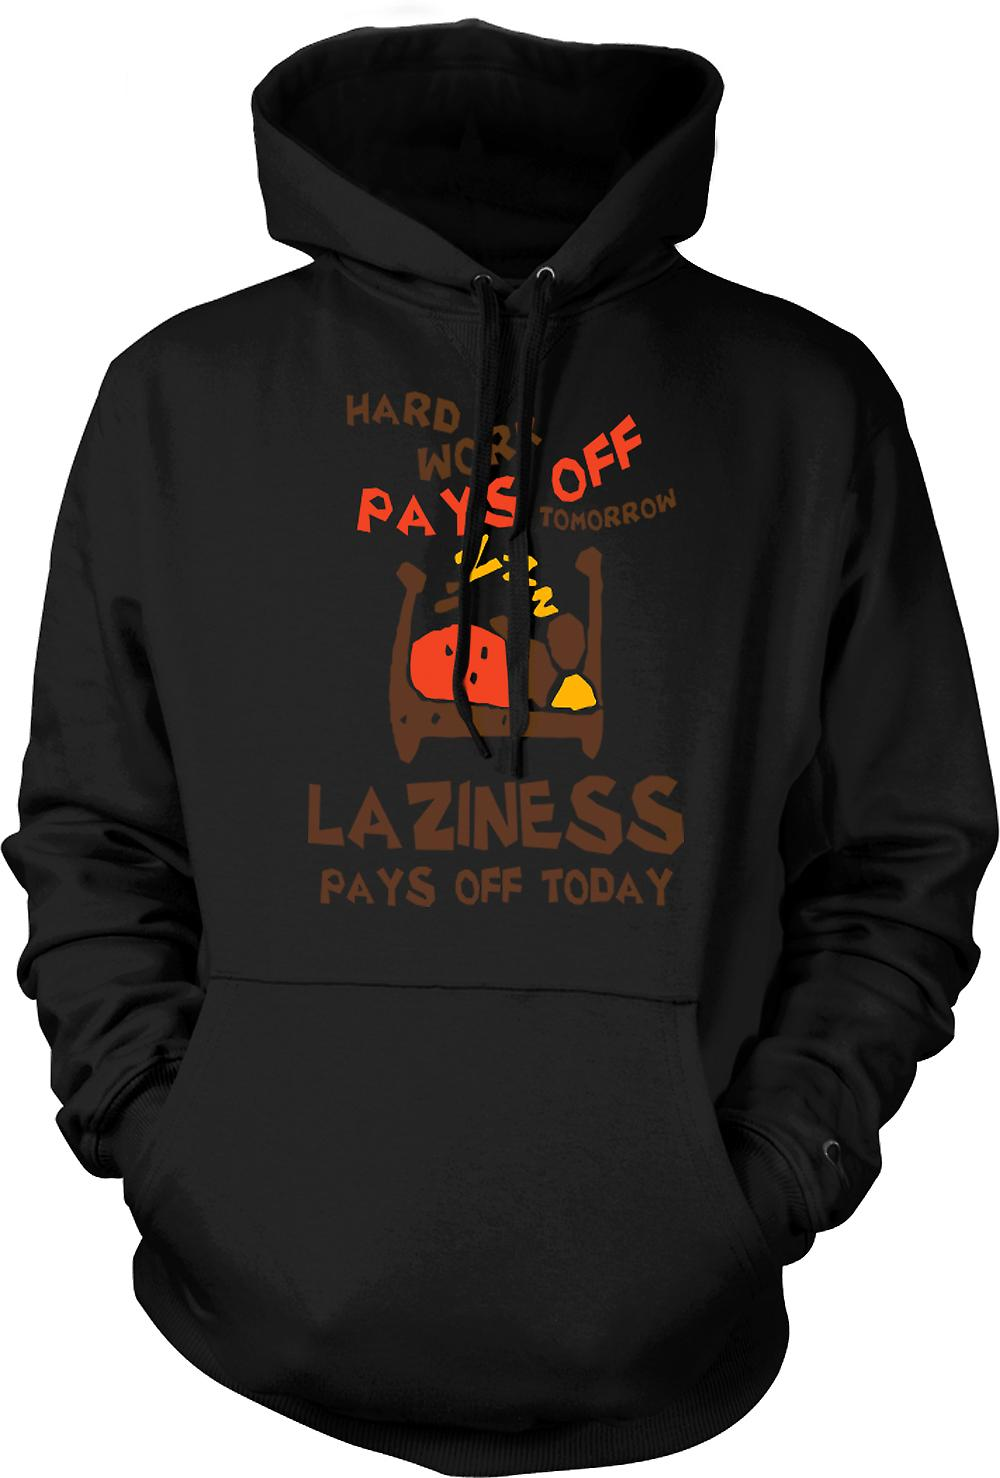 Mens Hoodie - Hard Work Pays Off Tomorrow, Laziness Pays Off Today